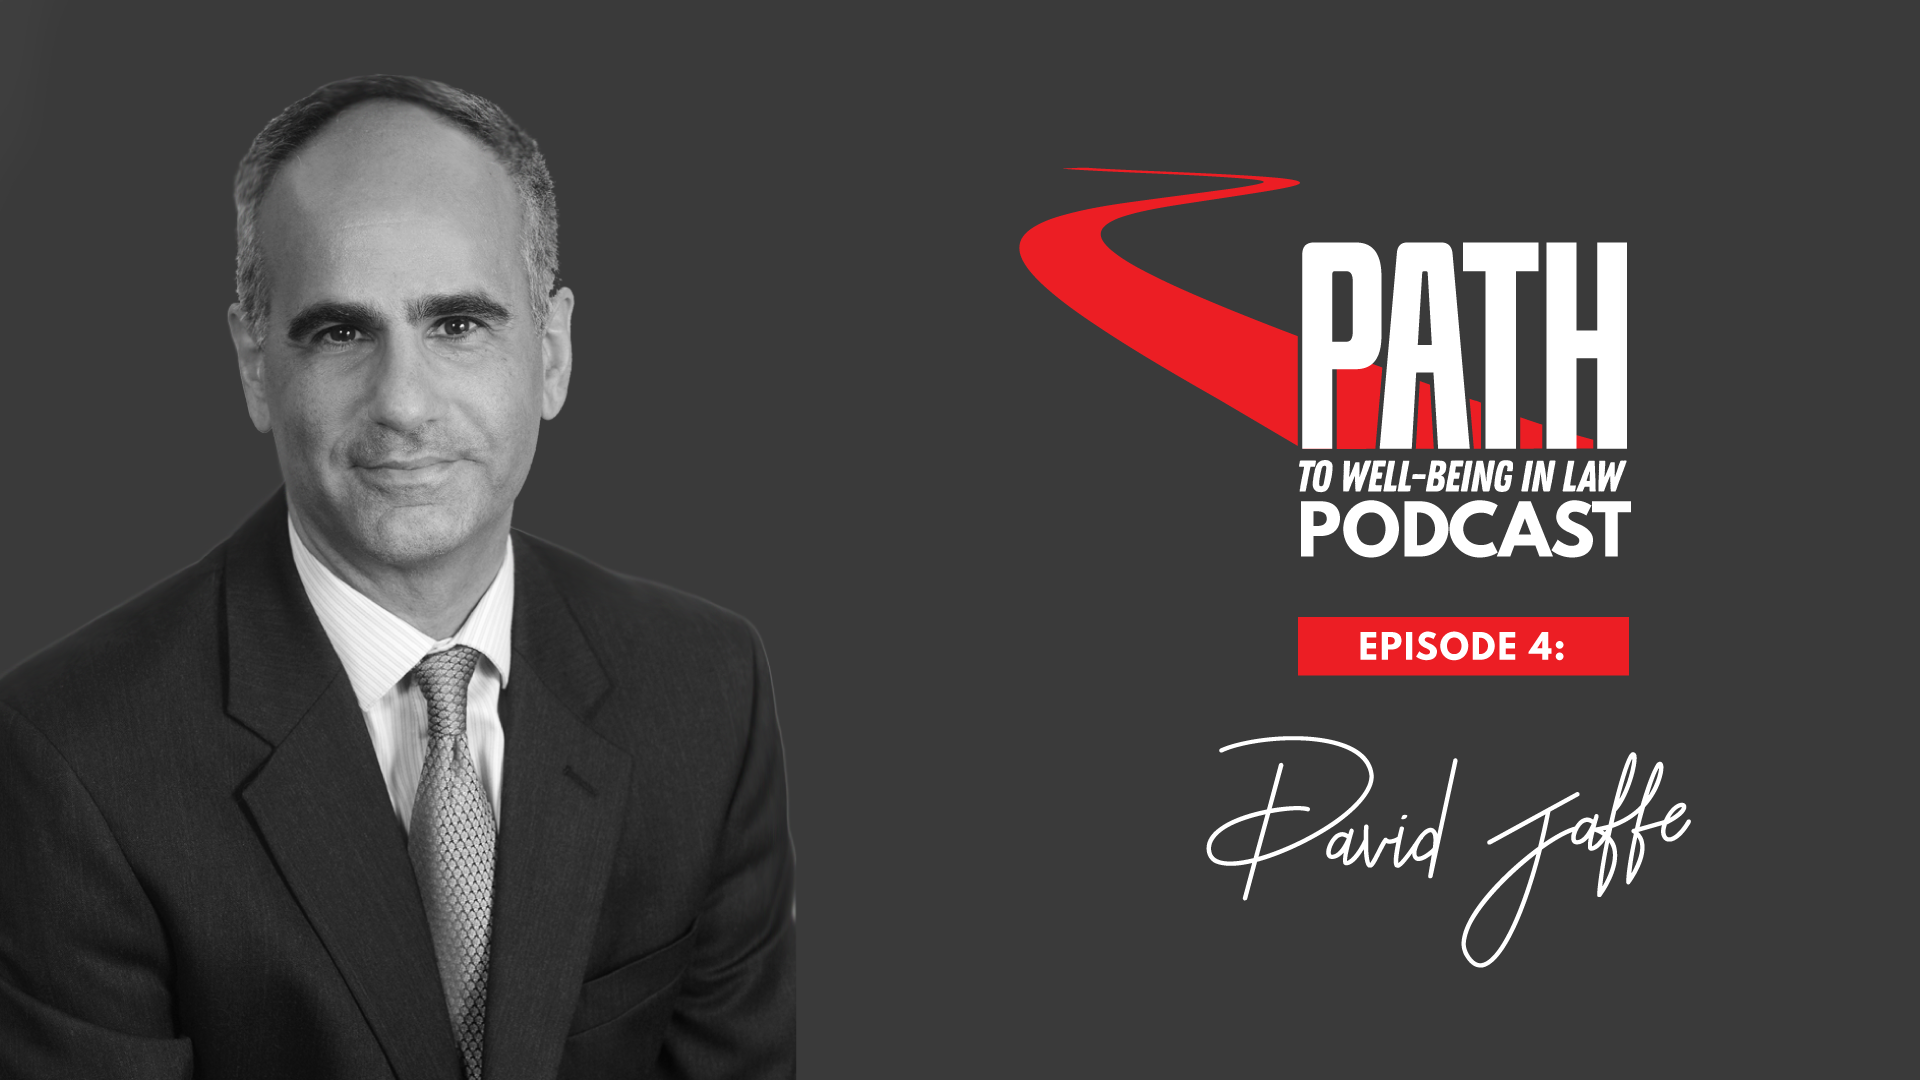 David Jaffe on the Path to Wellbeing in Law podcast